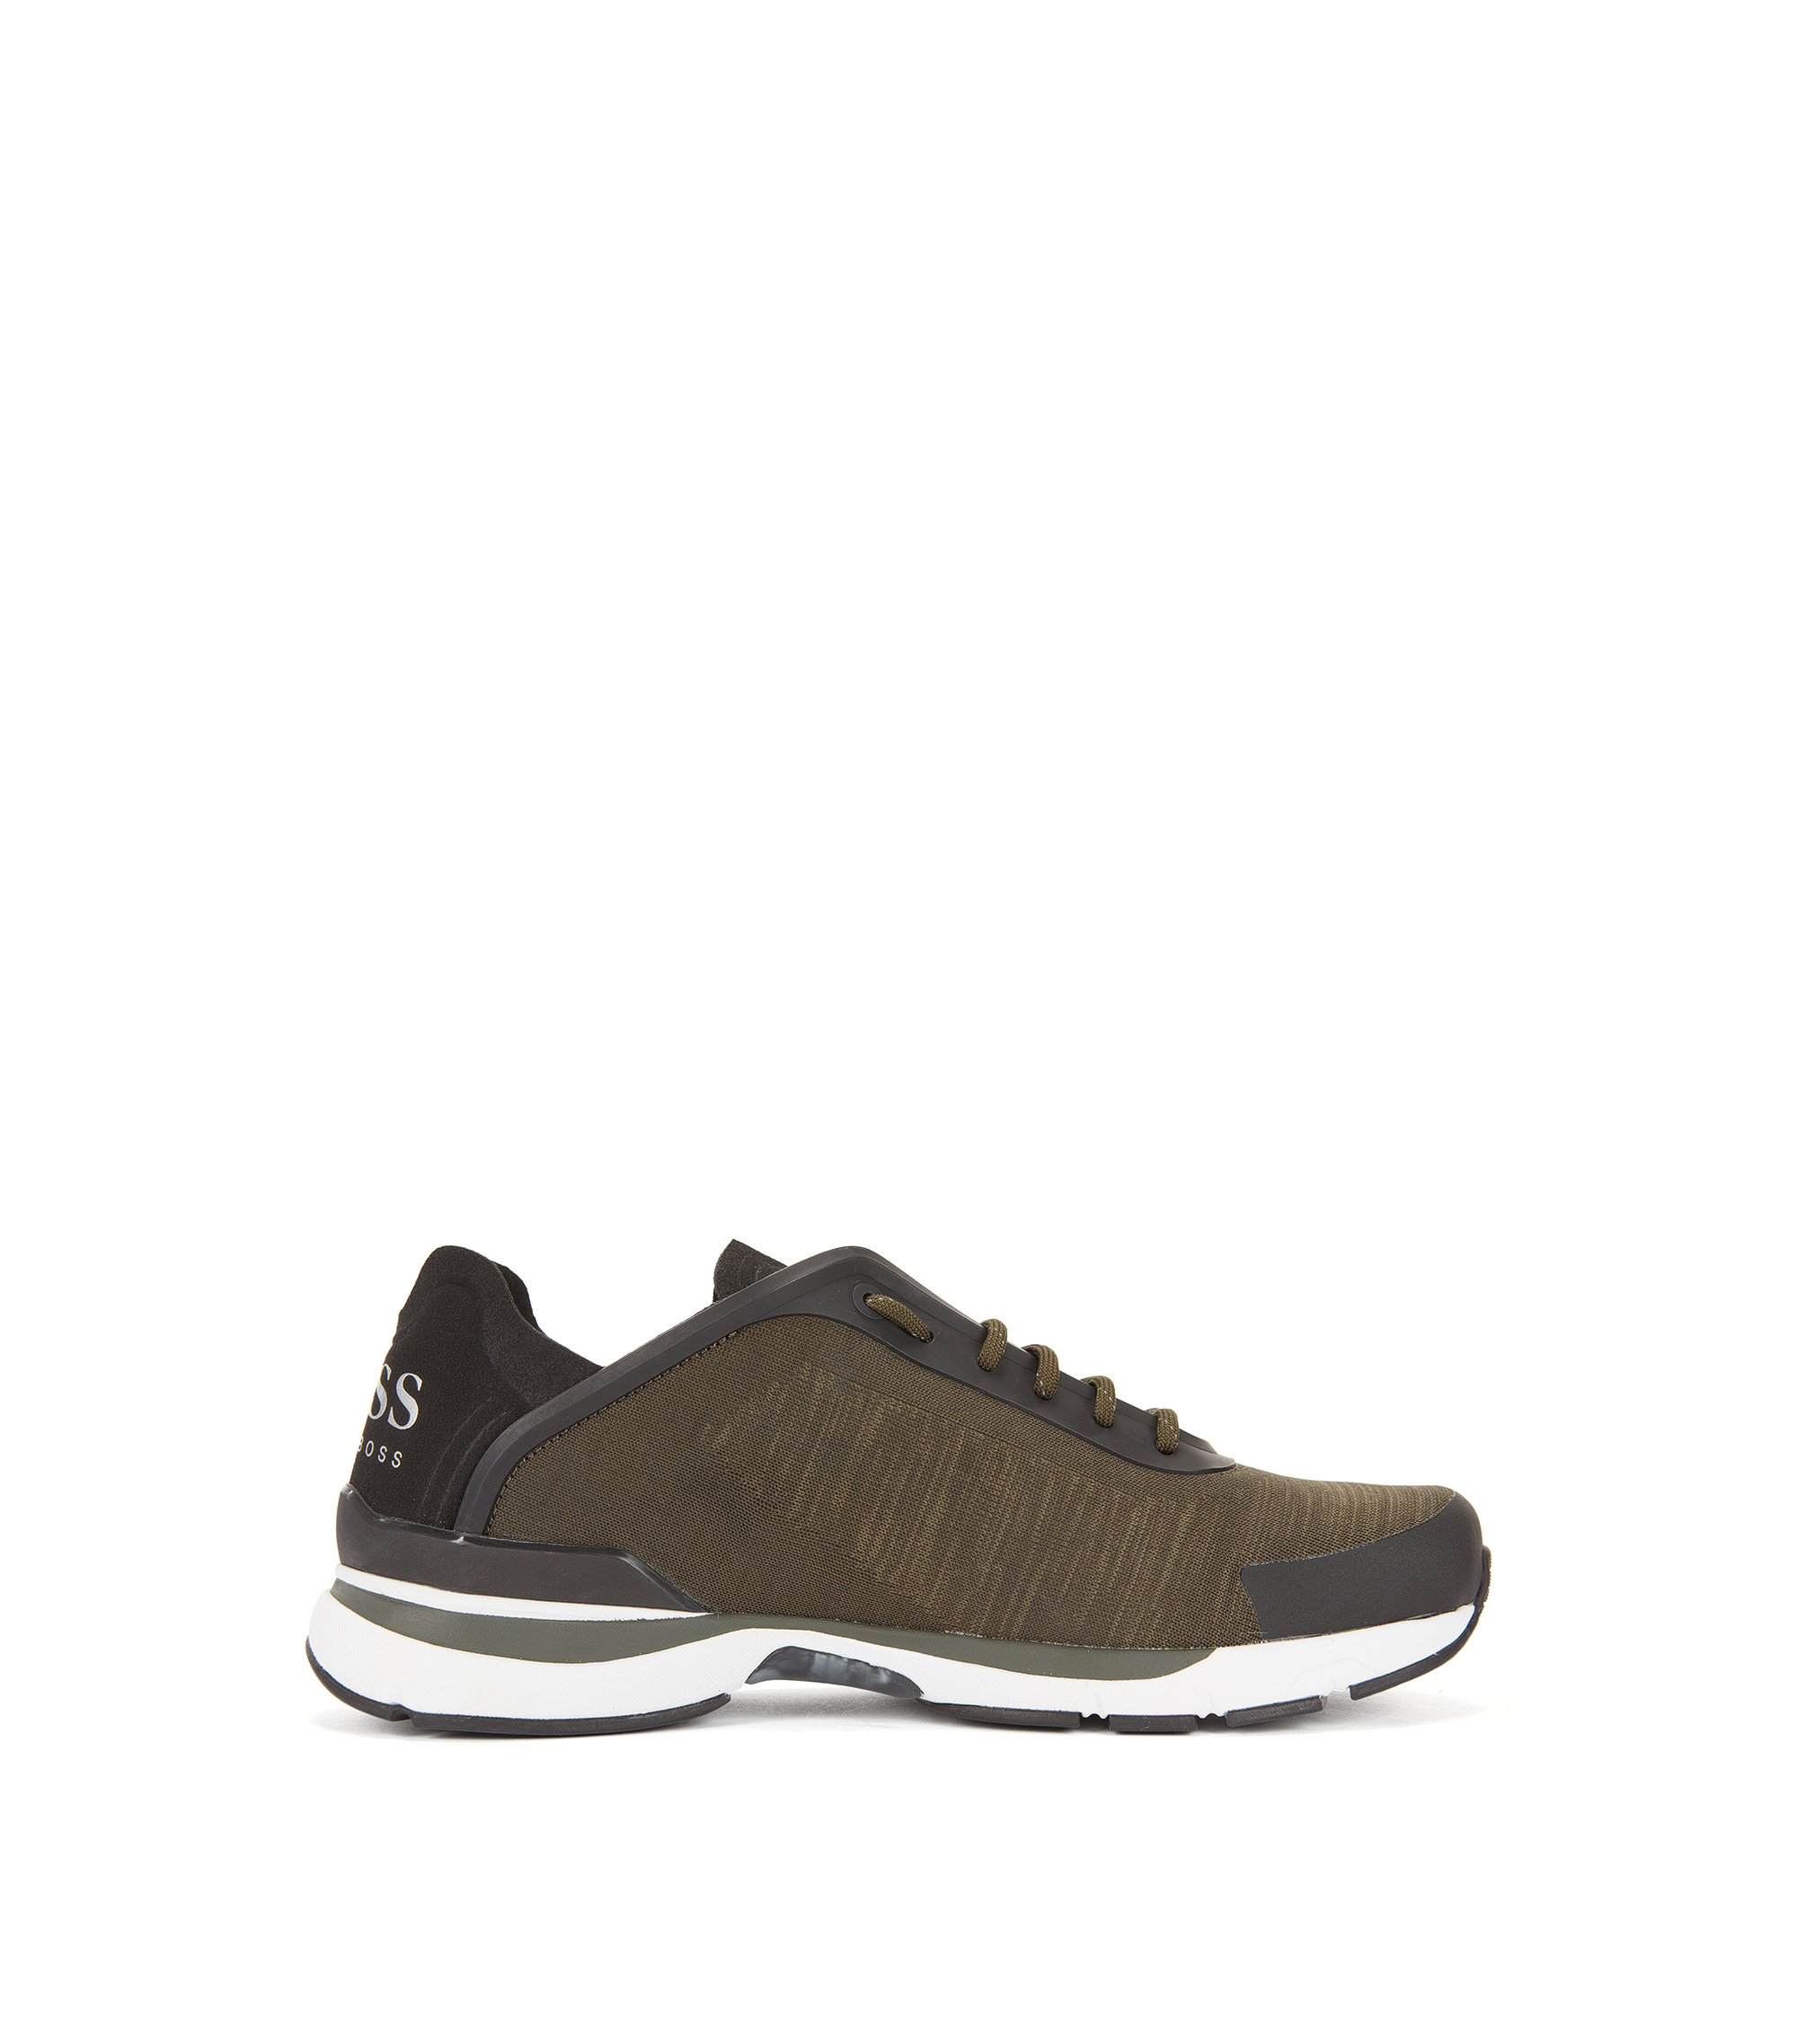 Running-inspired trainers with jacquard-knit uppers, Dark Green